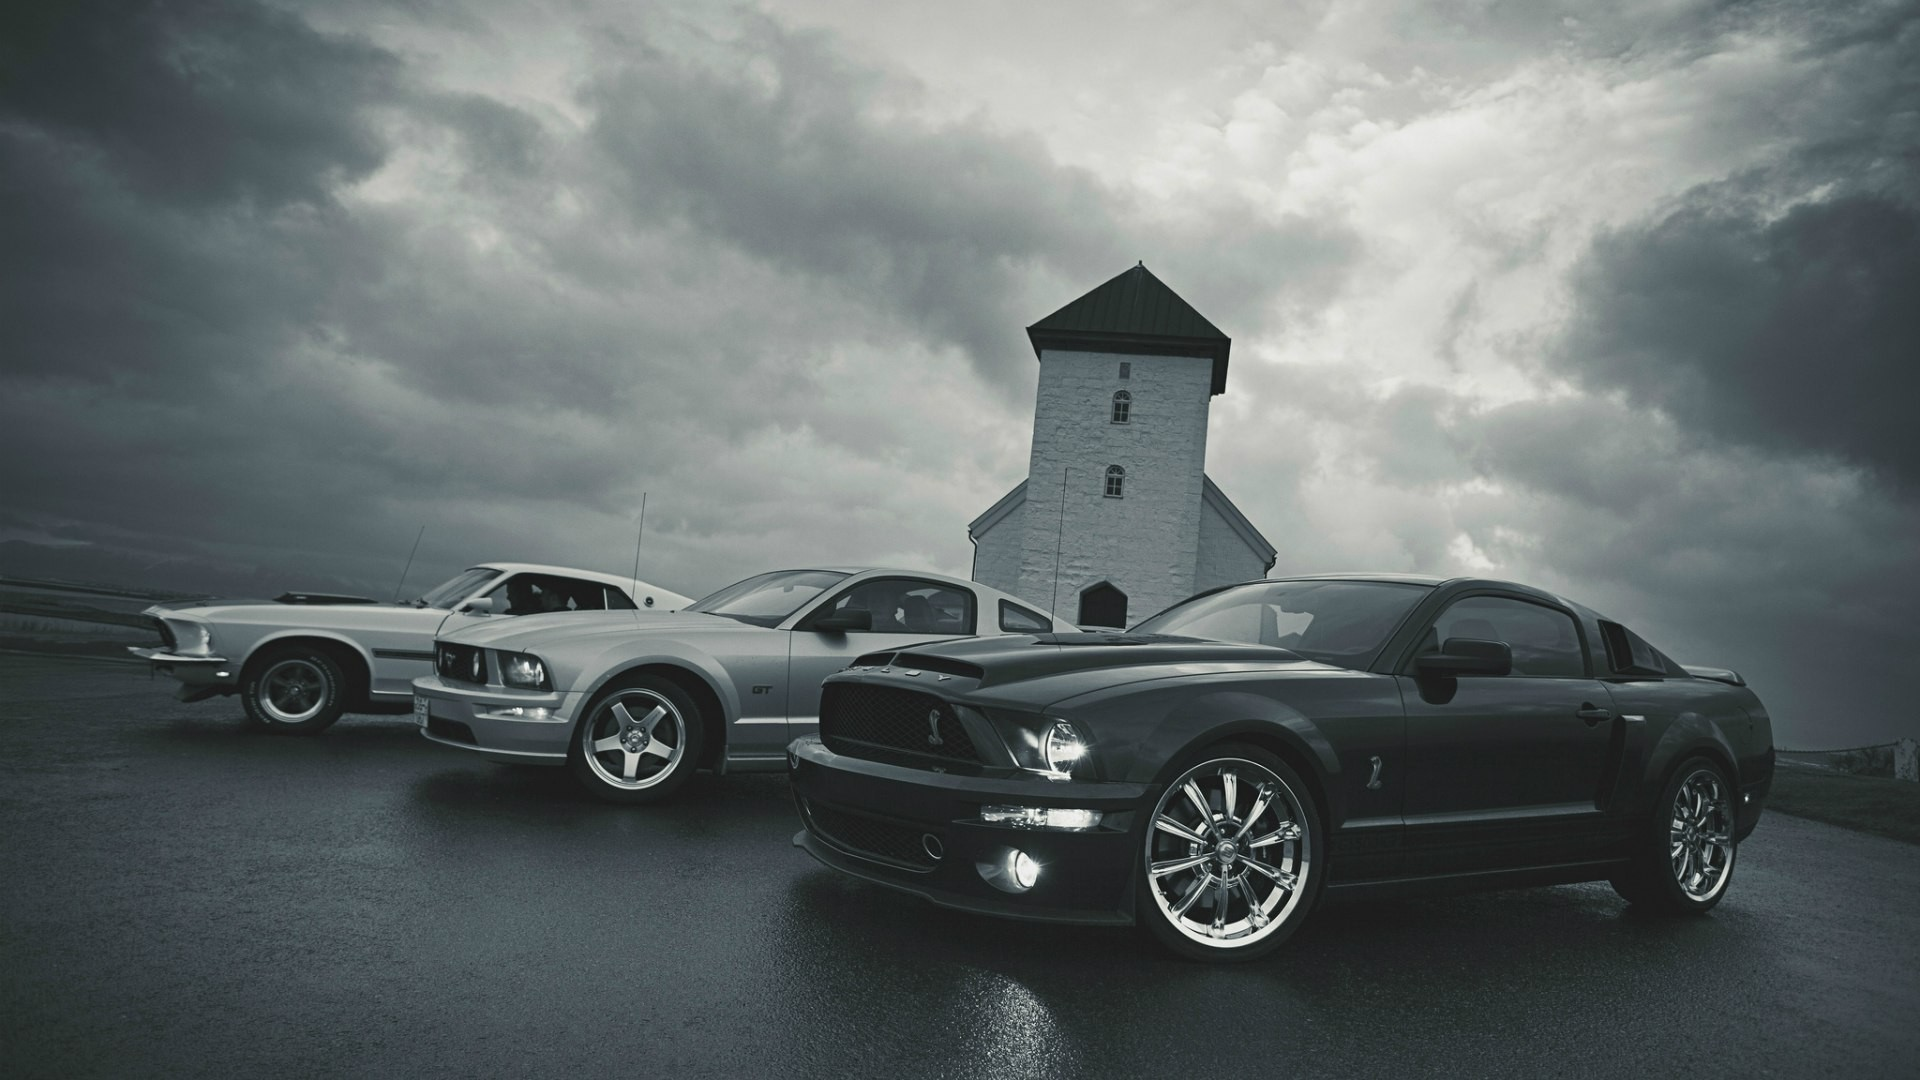 Ford Mustang muscle classic wallpaper | | 110682 | WallpaperUP